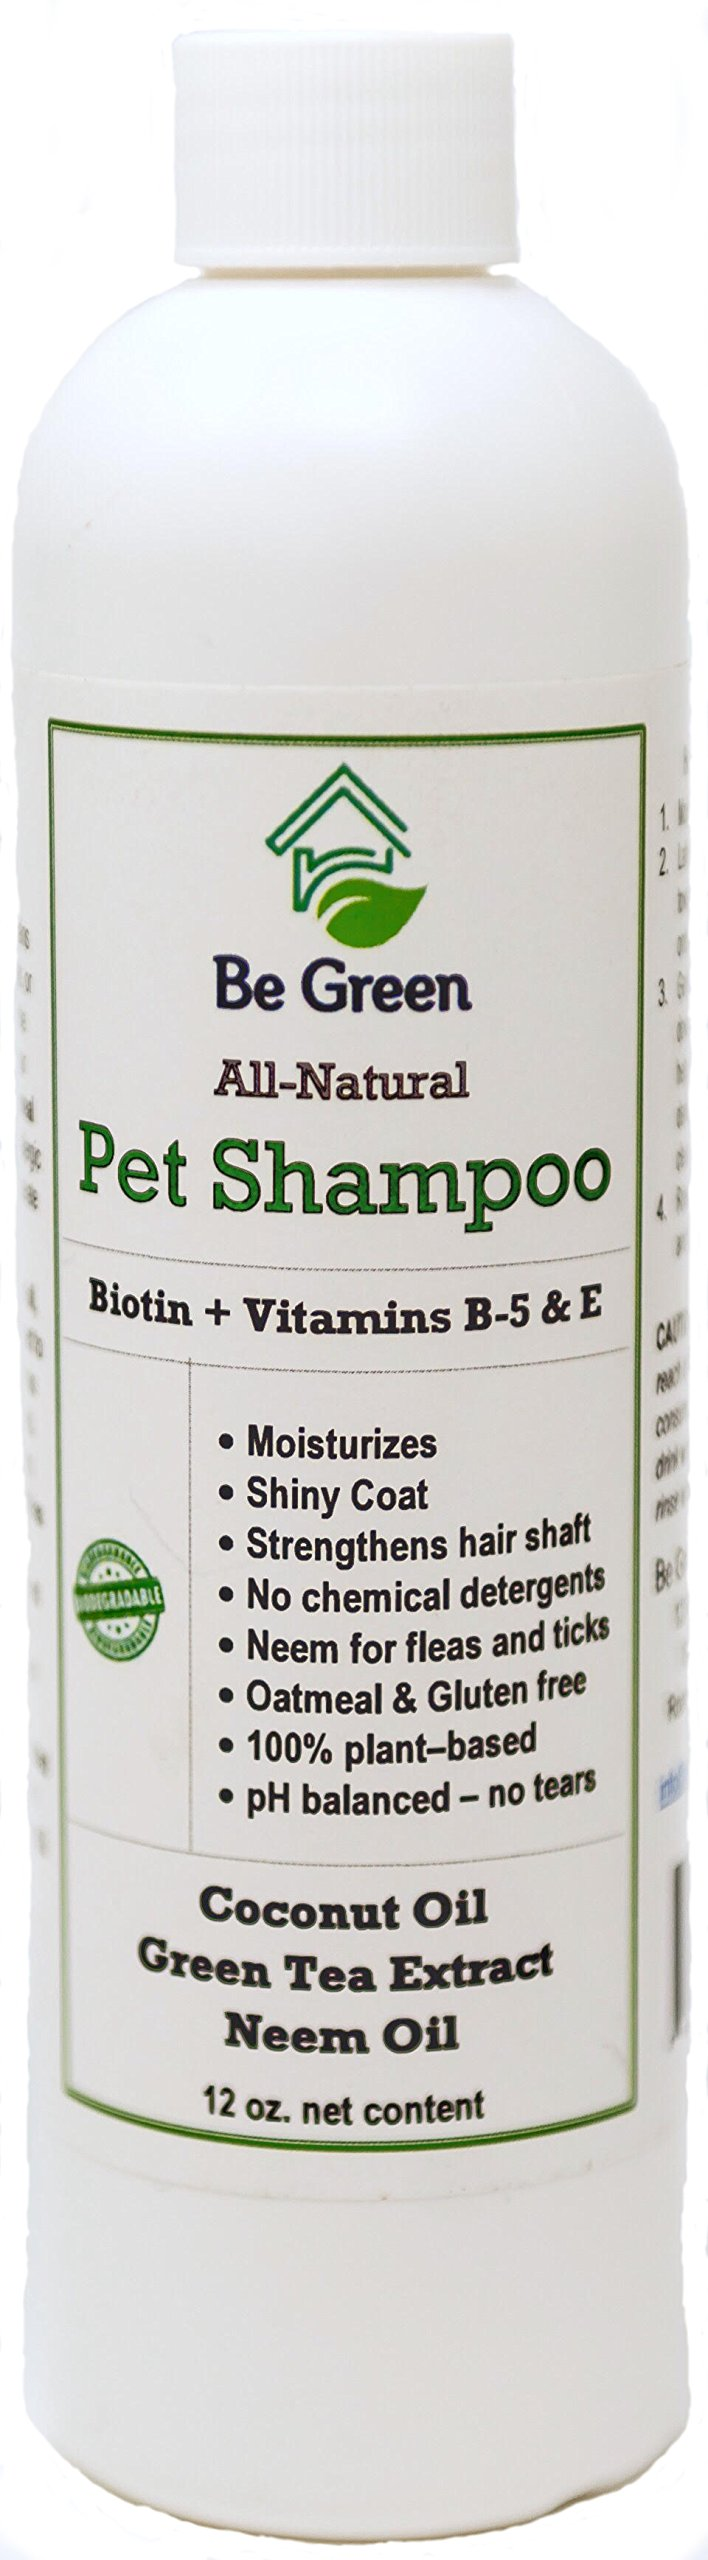 Be Green All Natural Pet Shampoo - Soothes Dry, Itchy, or Sensitive Skin - with Coconut Oil, Green Tea Extract, Biotin, Vitamins B and E, Chemical Free, Oatmeal Free and Biodegradable